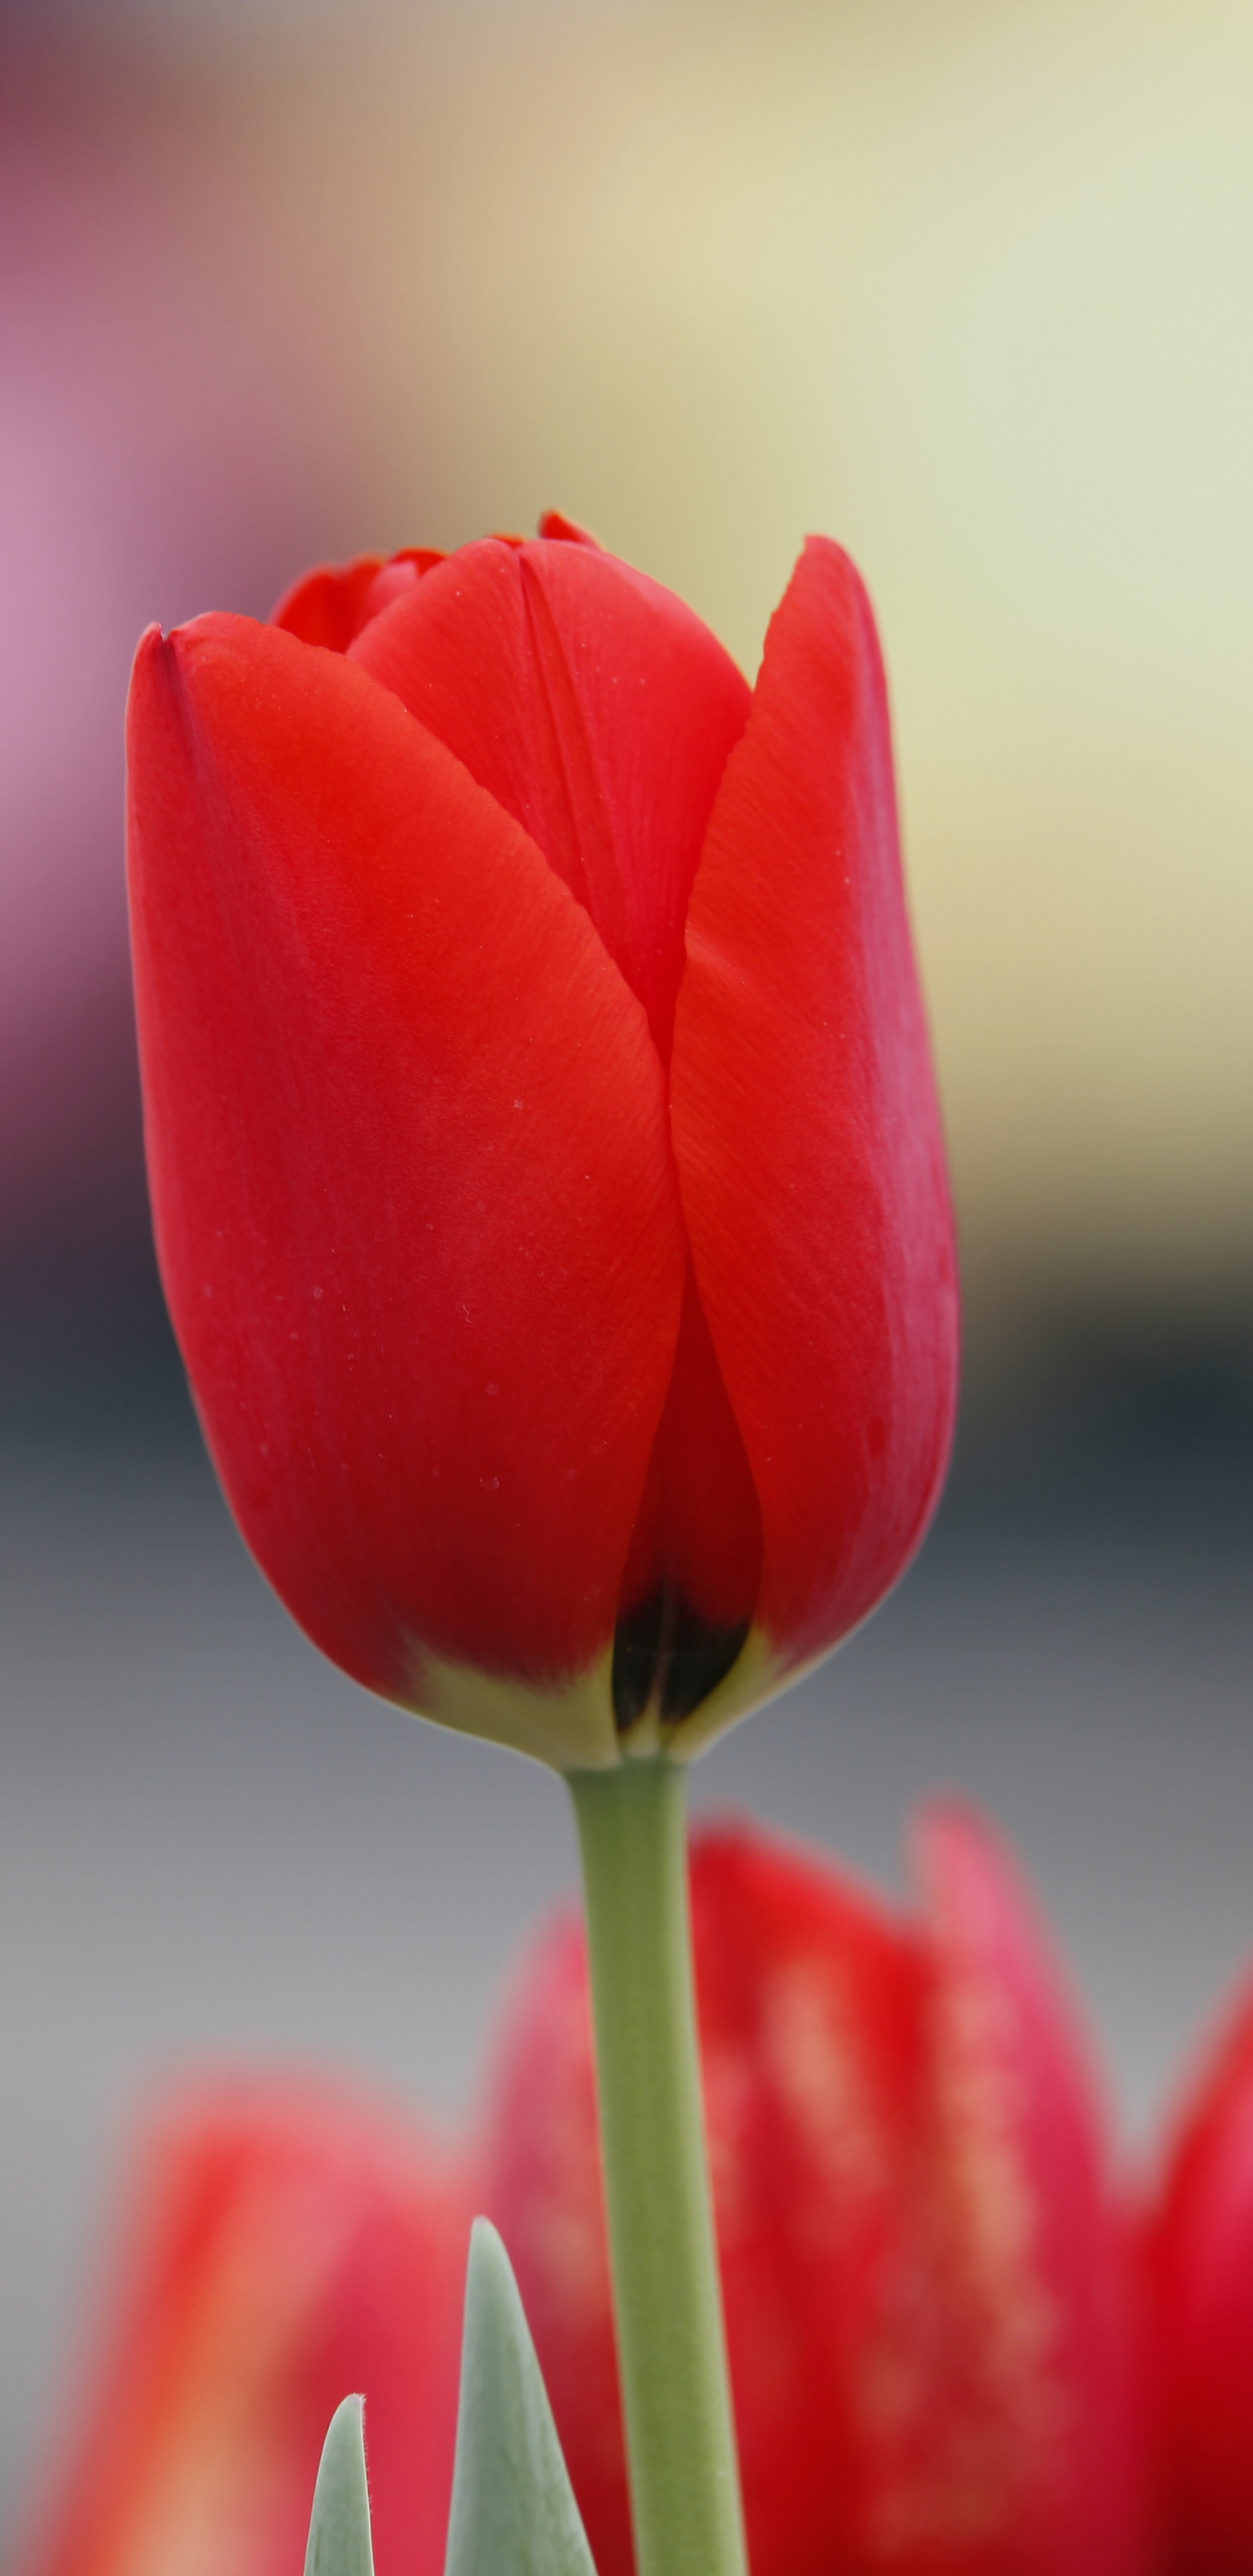 Red Tulip Flowers Bud Wallpaper Flower Samsung Galaxy S8 Wallpaper Hd 1440x2960 Wallpaper Teahub Io